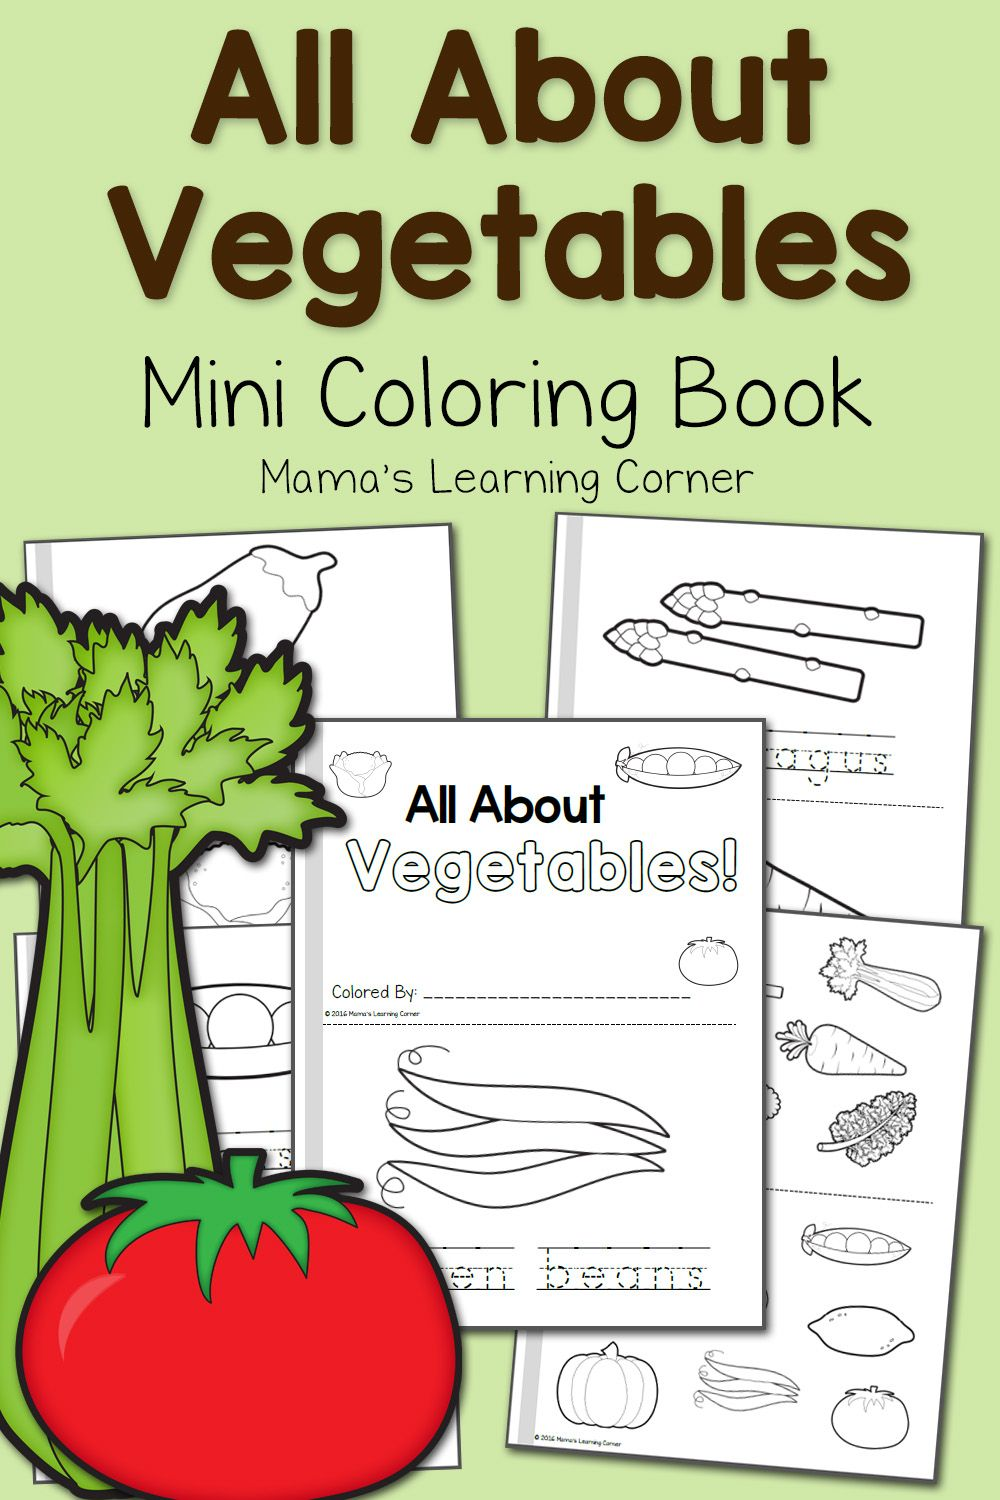 Vegetable coloring pages work crafts and bulletin boards